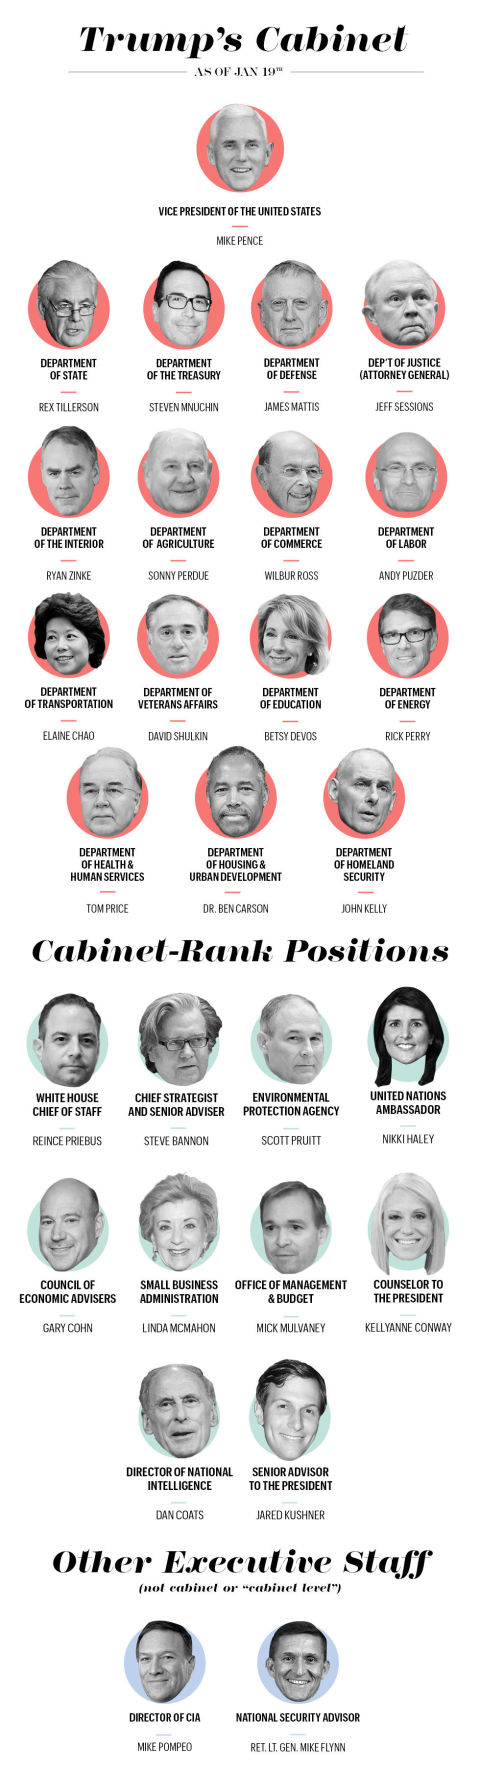 trumps-cabinet-picks